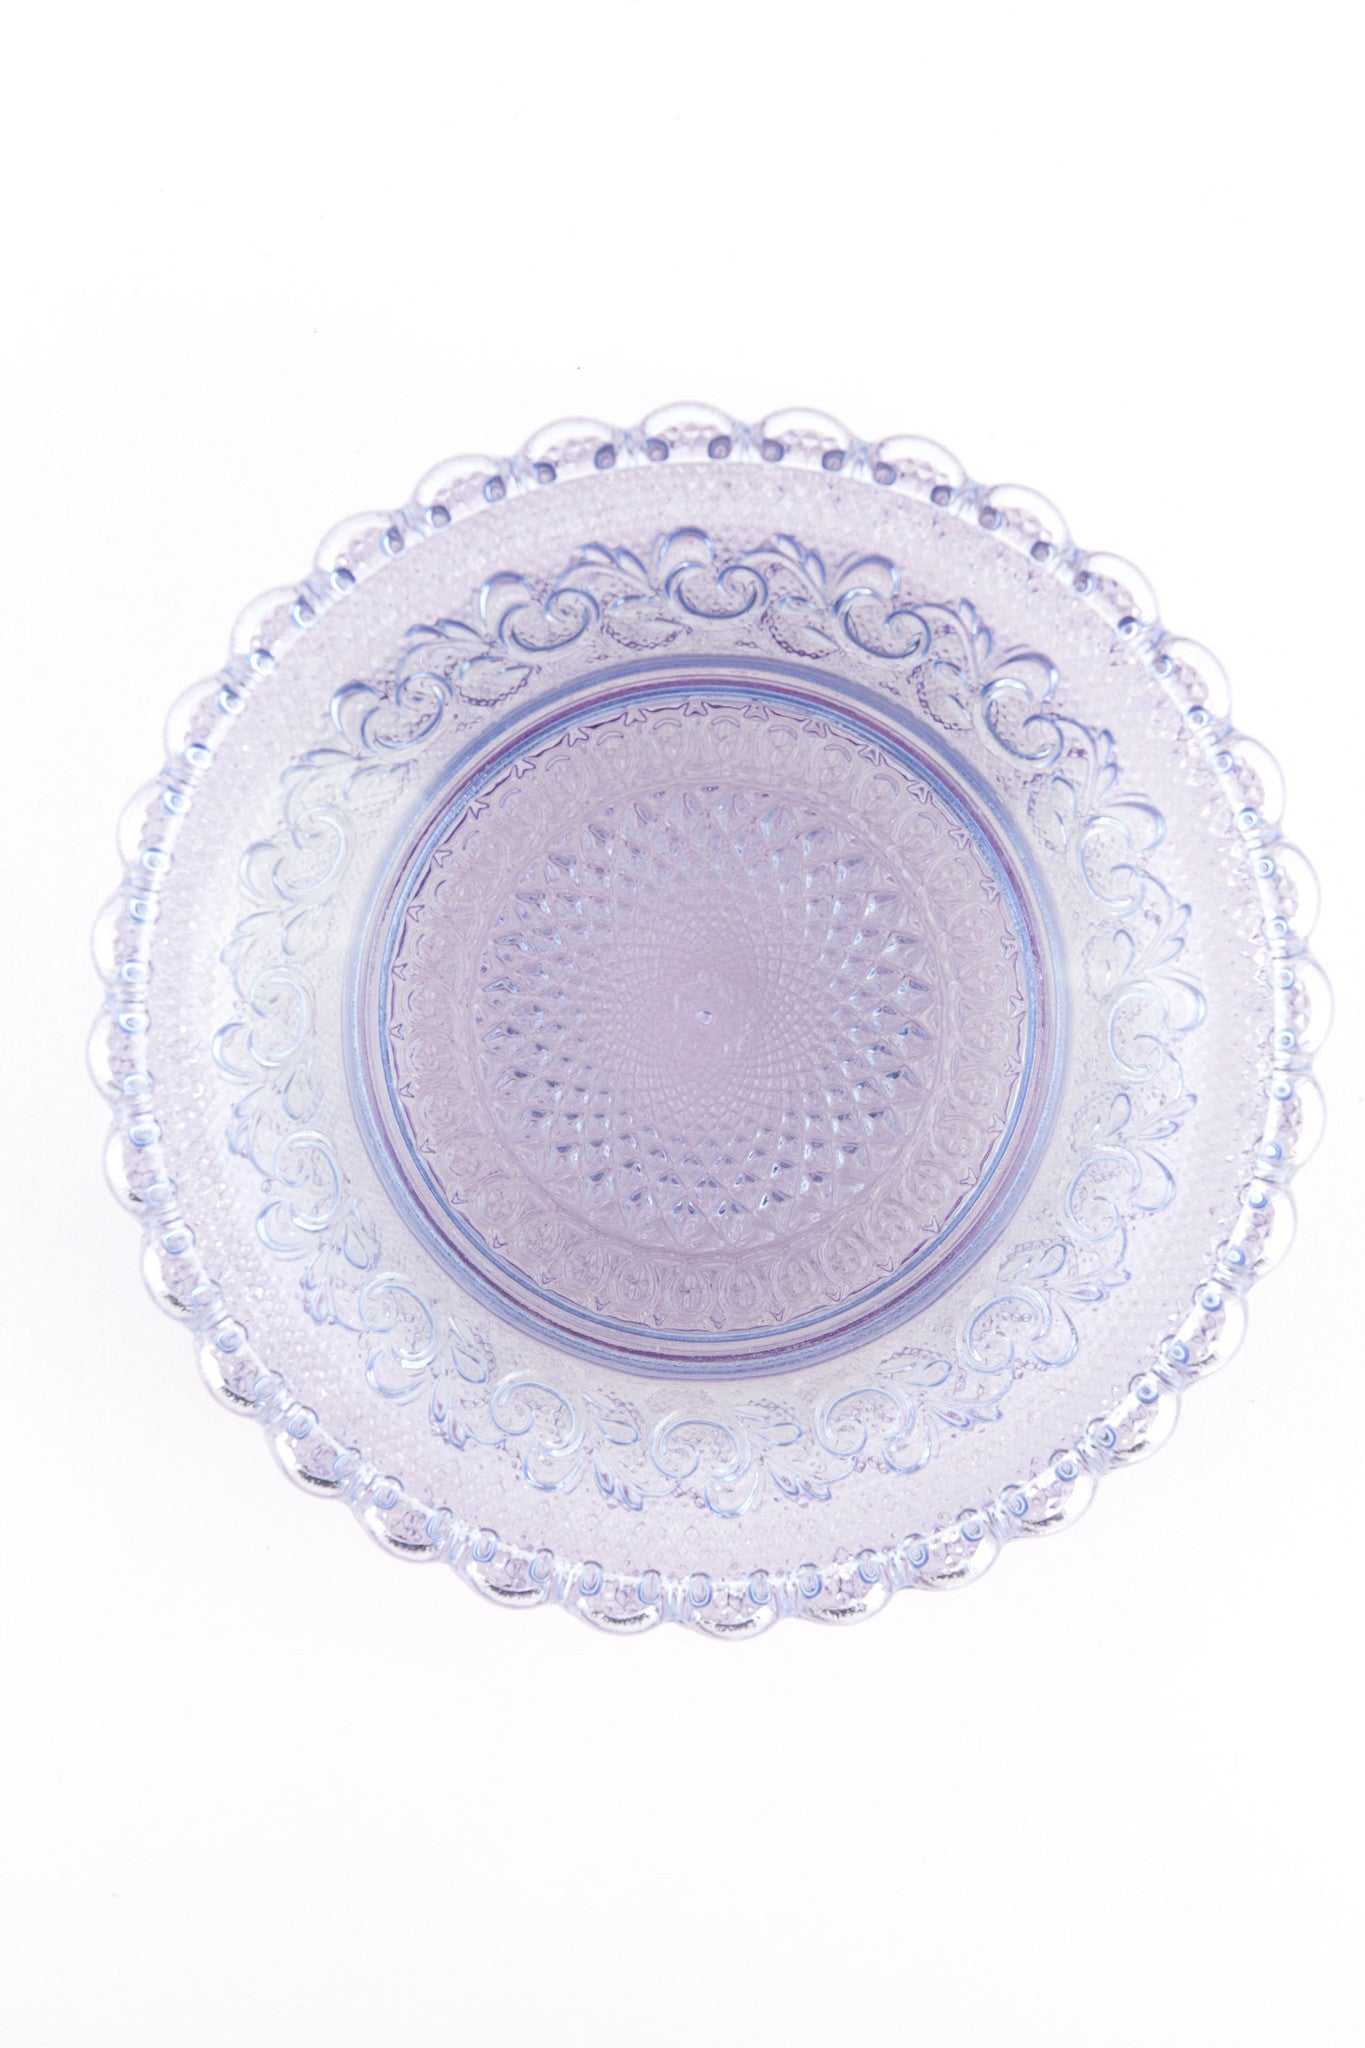 Dentelle Chantilly Glass Plate in Blush